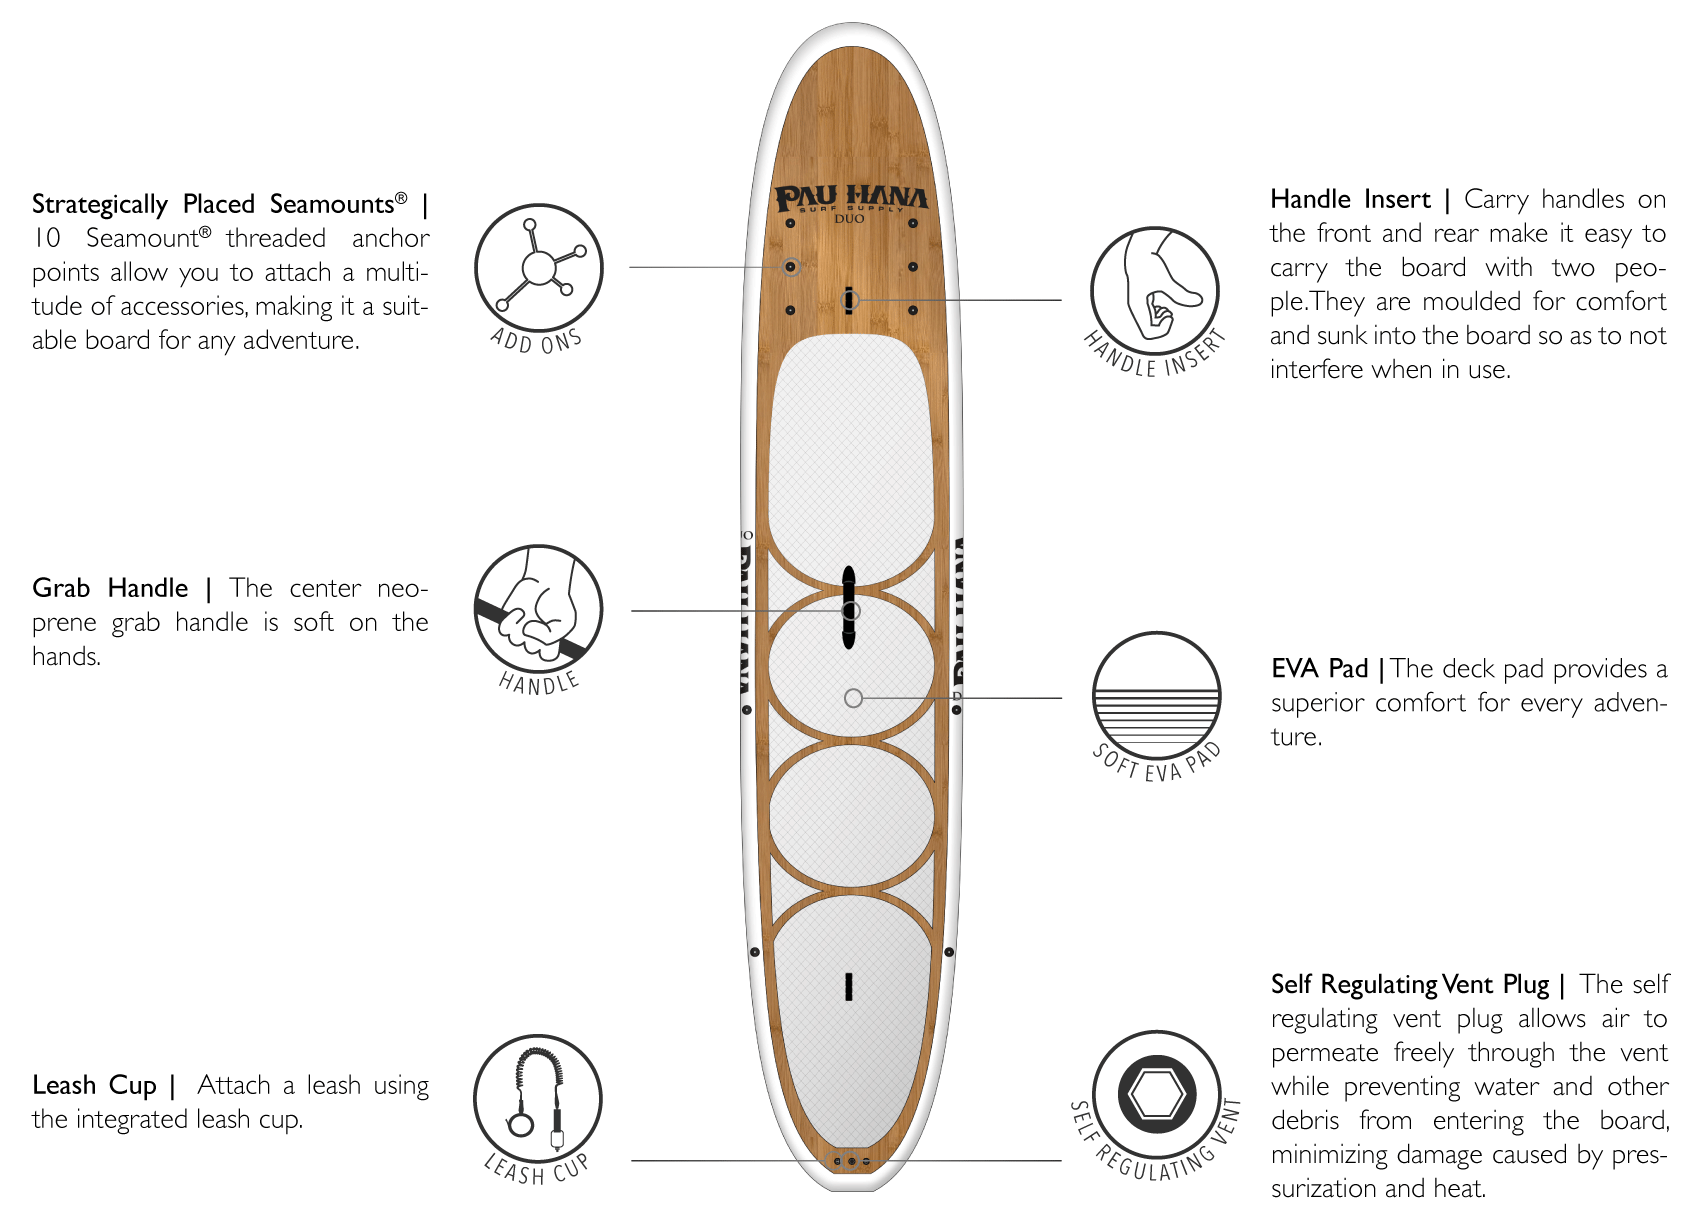 Duo tandem sup features including seamounts, center carry handle, leash cup, carry handles Eva deck pad and self regulating vent plug